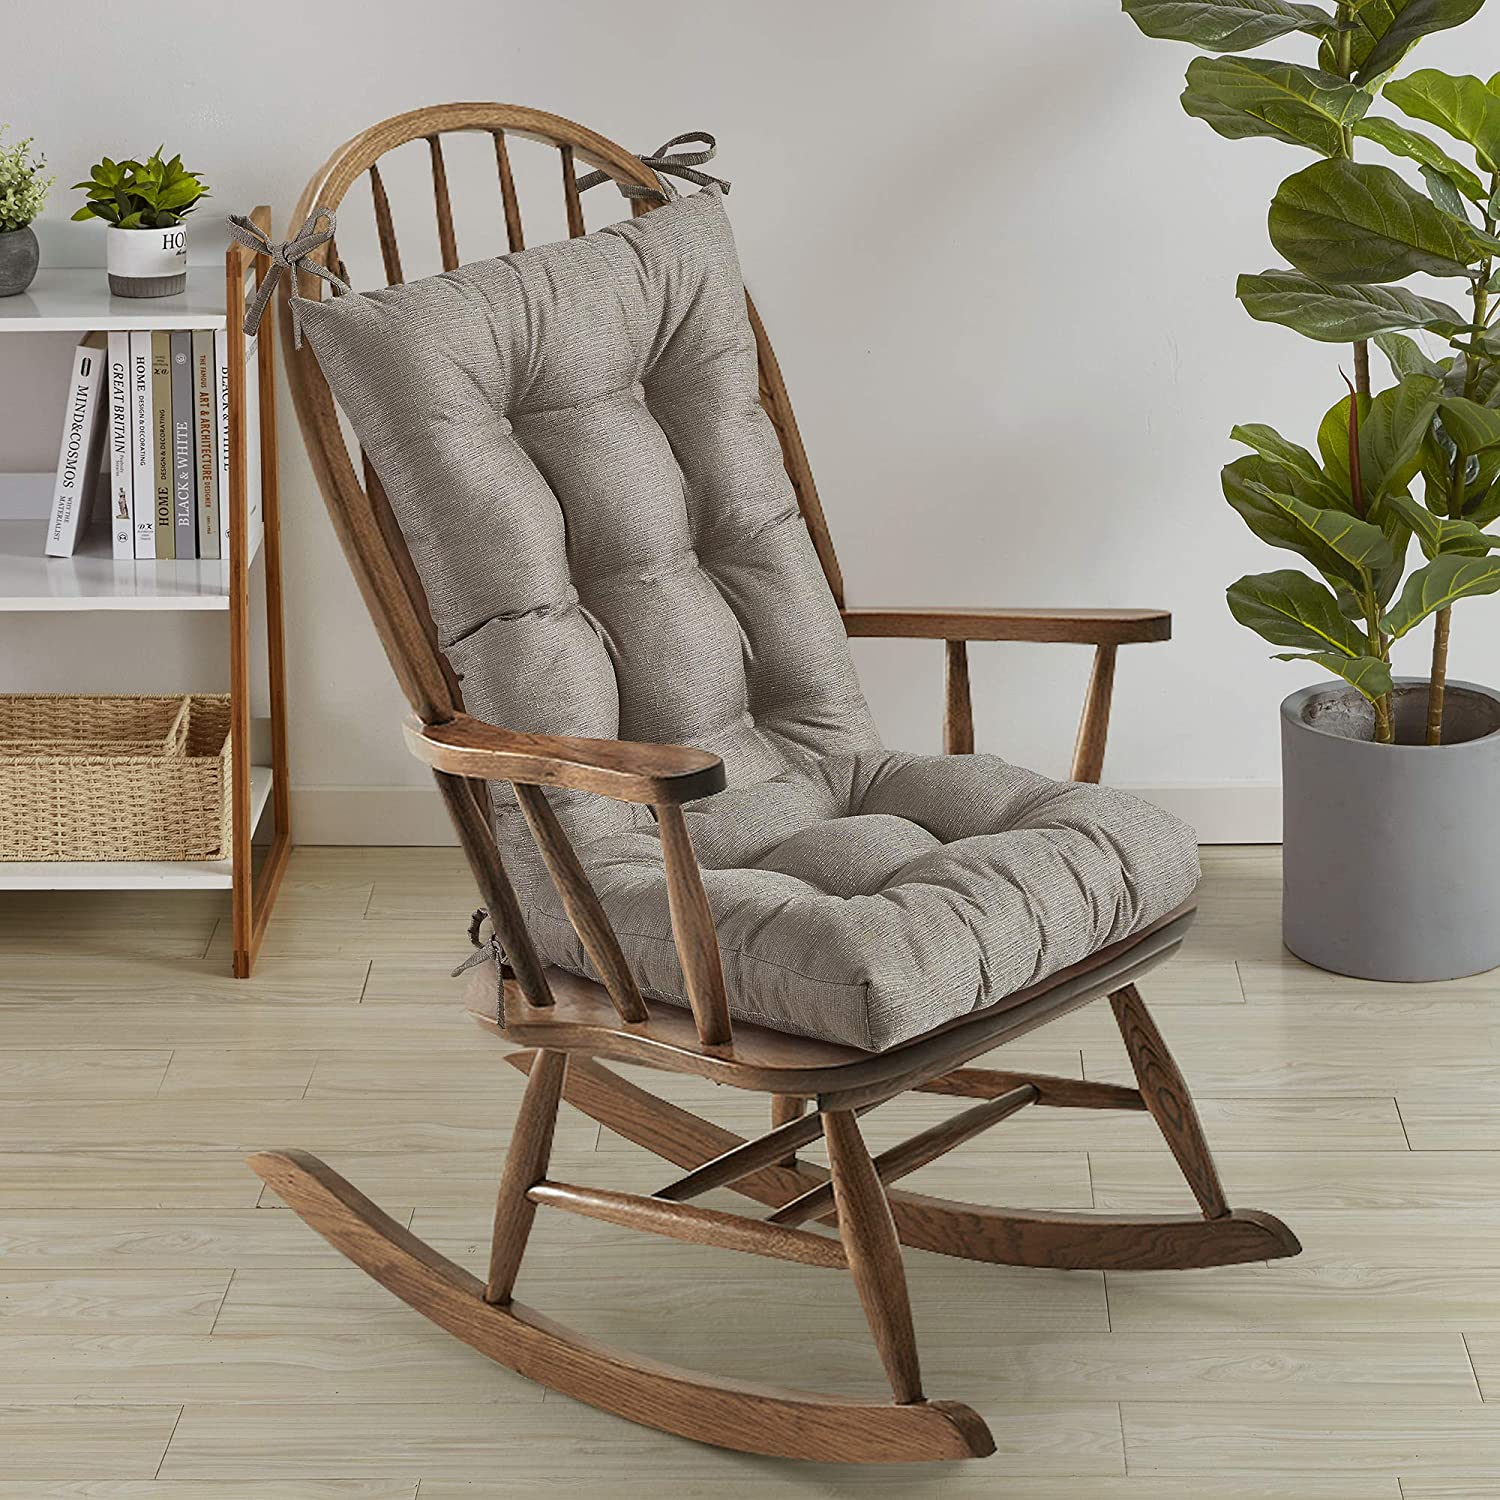 Sweet Colorado Springs Mall Home Collection Rocking Chair Cushion High order Pads Tufted Premium